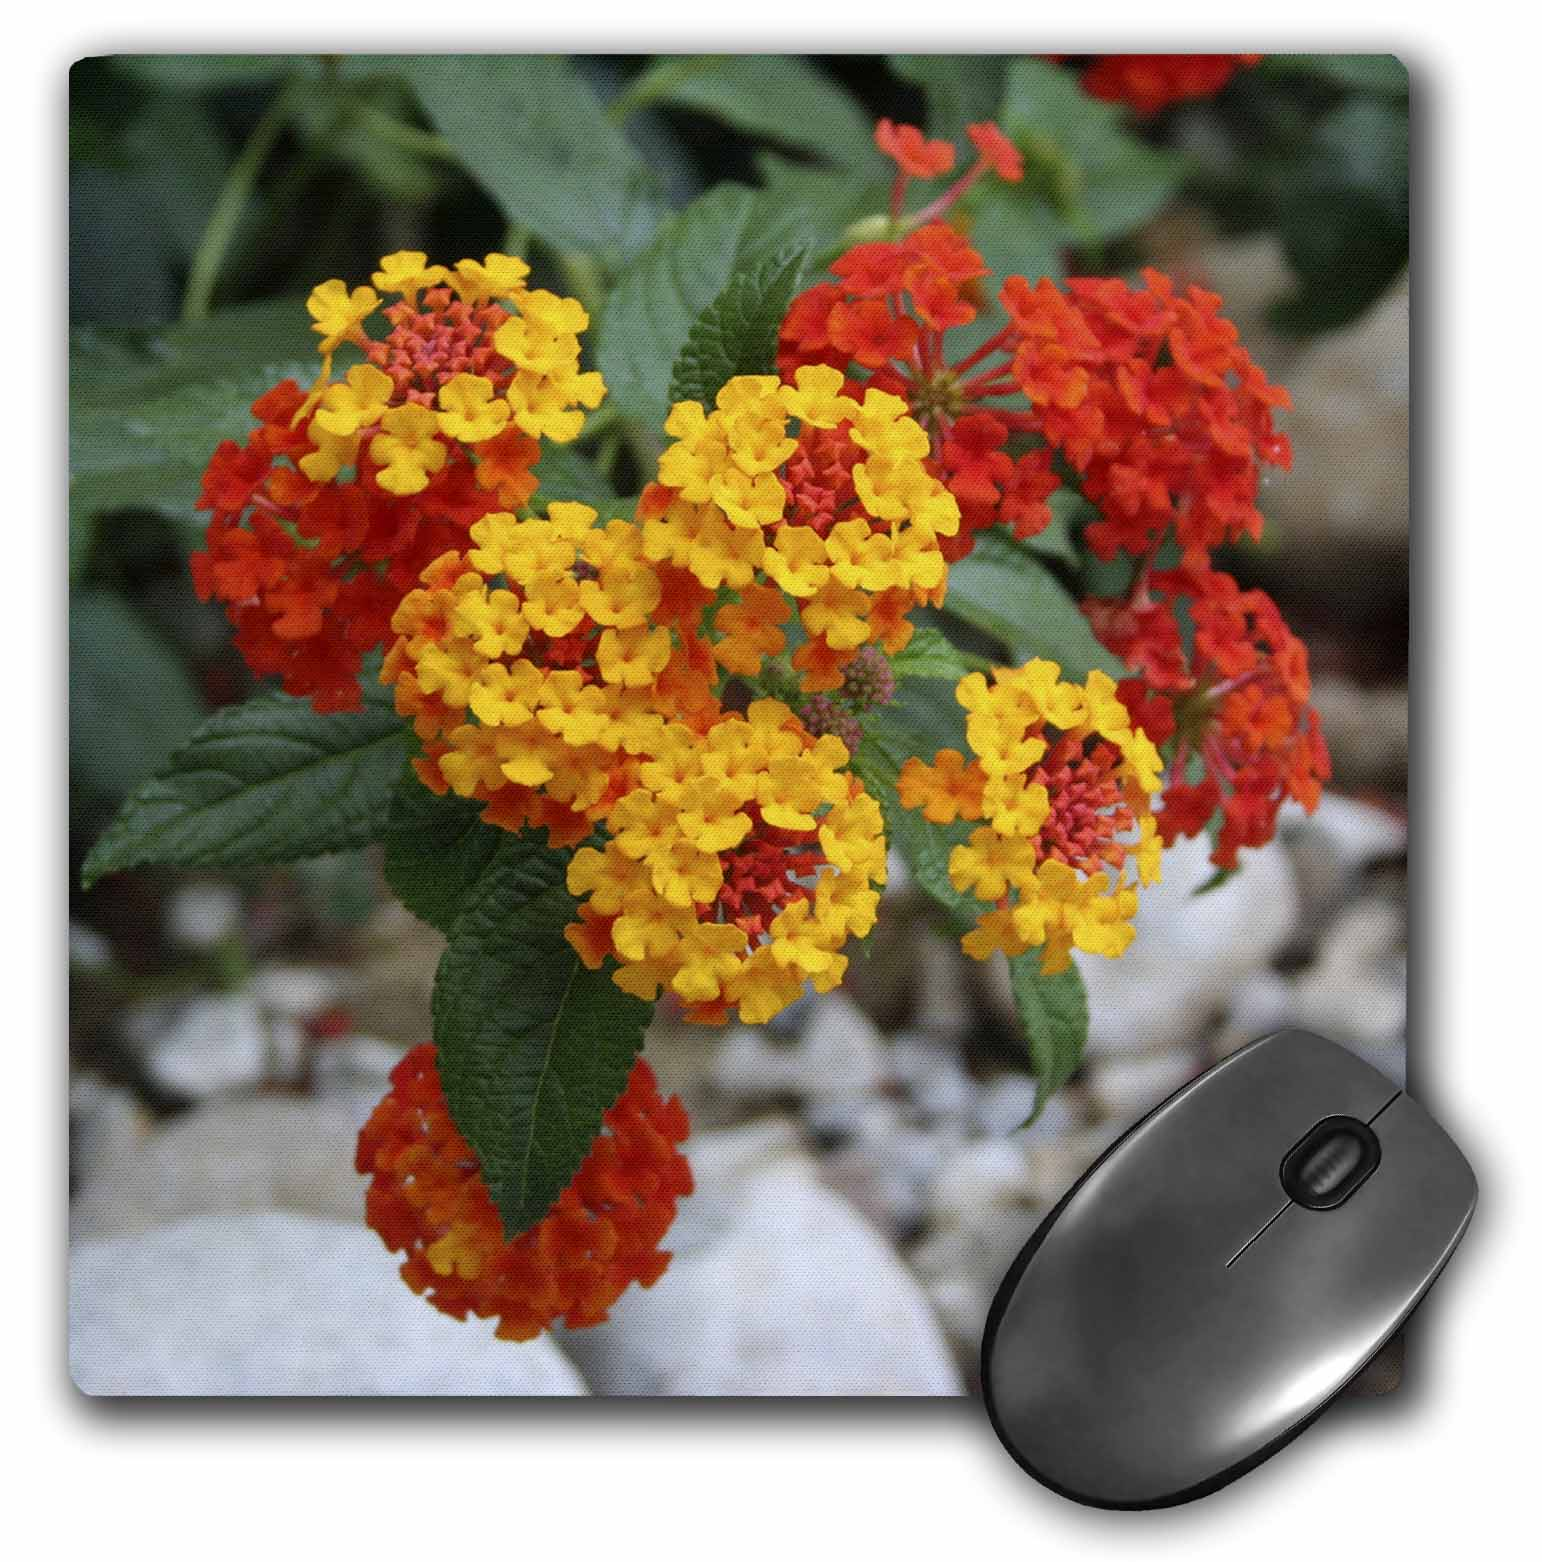 3dRose Red and Gold Lantana -flower, flowers, lantana, plant, plants, shrub verbena, verbena, Mouse Pad, 8 by 8 inches